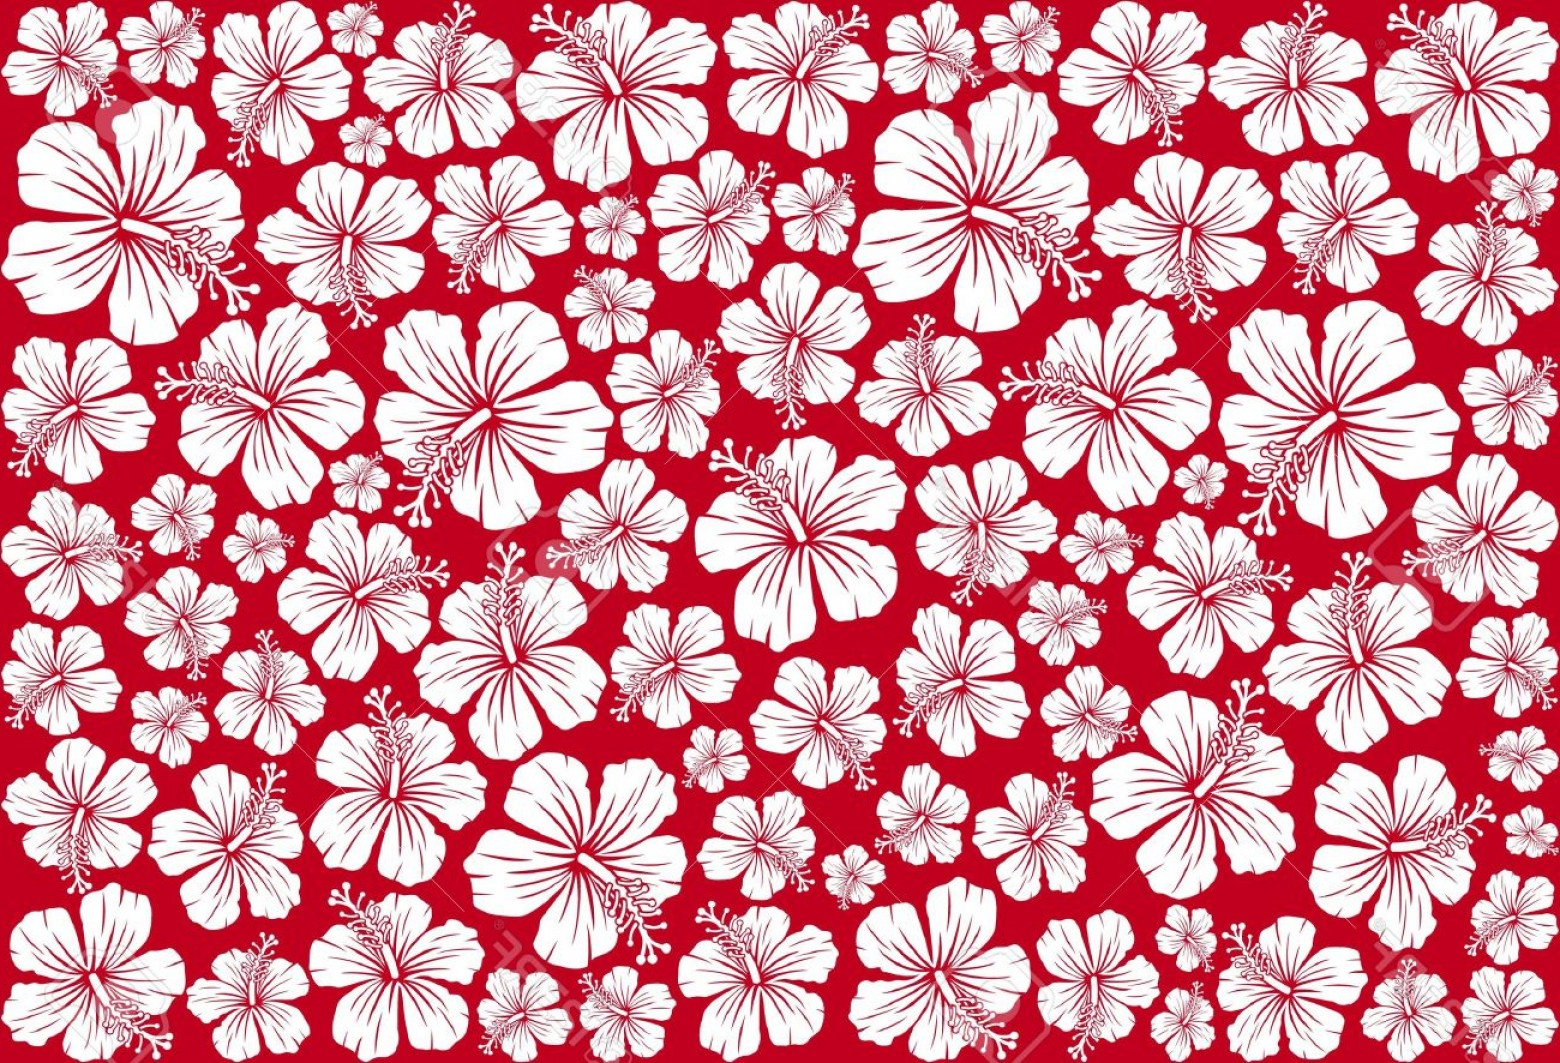 Trendy Photoseamless Floral Pattern Whit Hibiscus Hibiscus Pattern